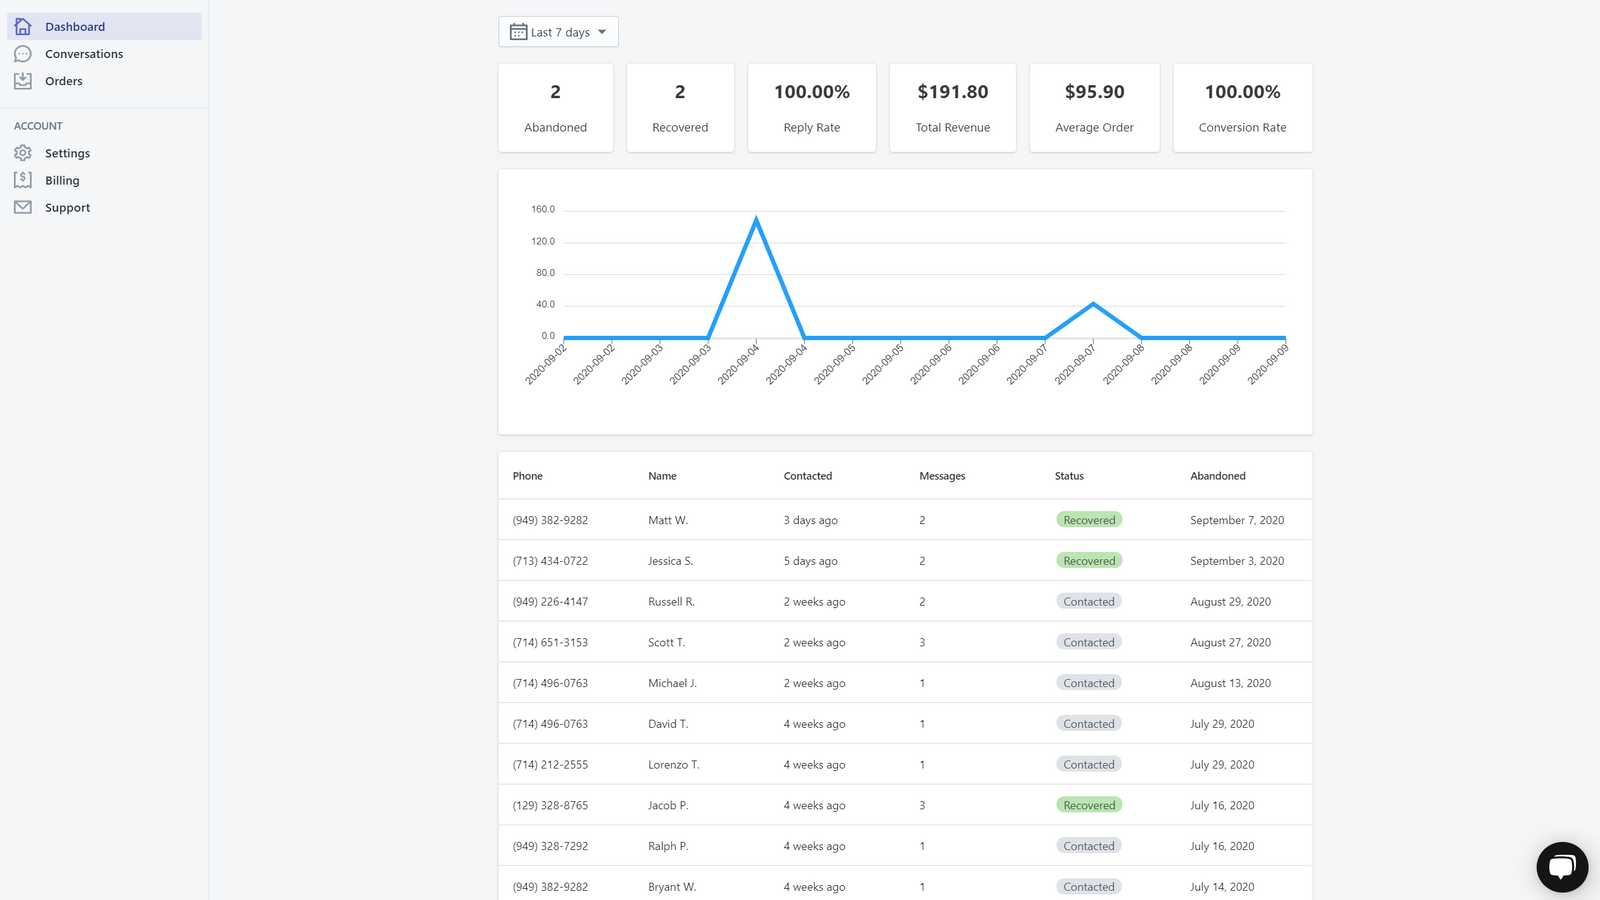 View insights, customers, and order amount